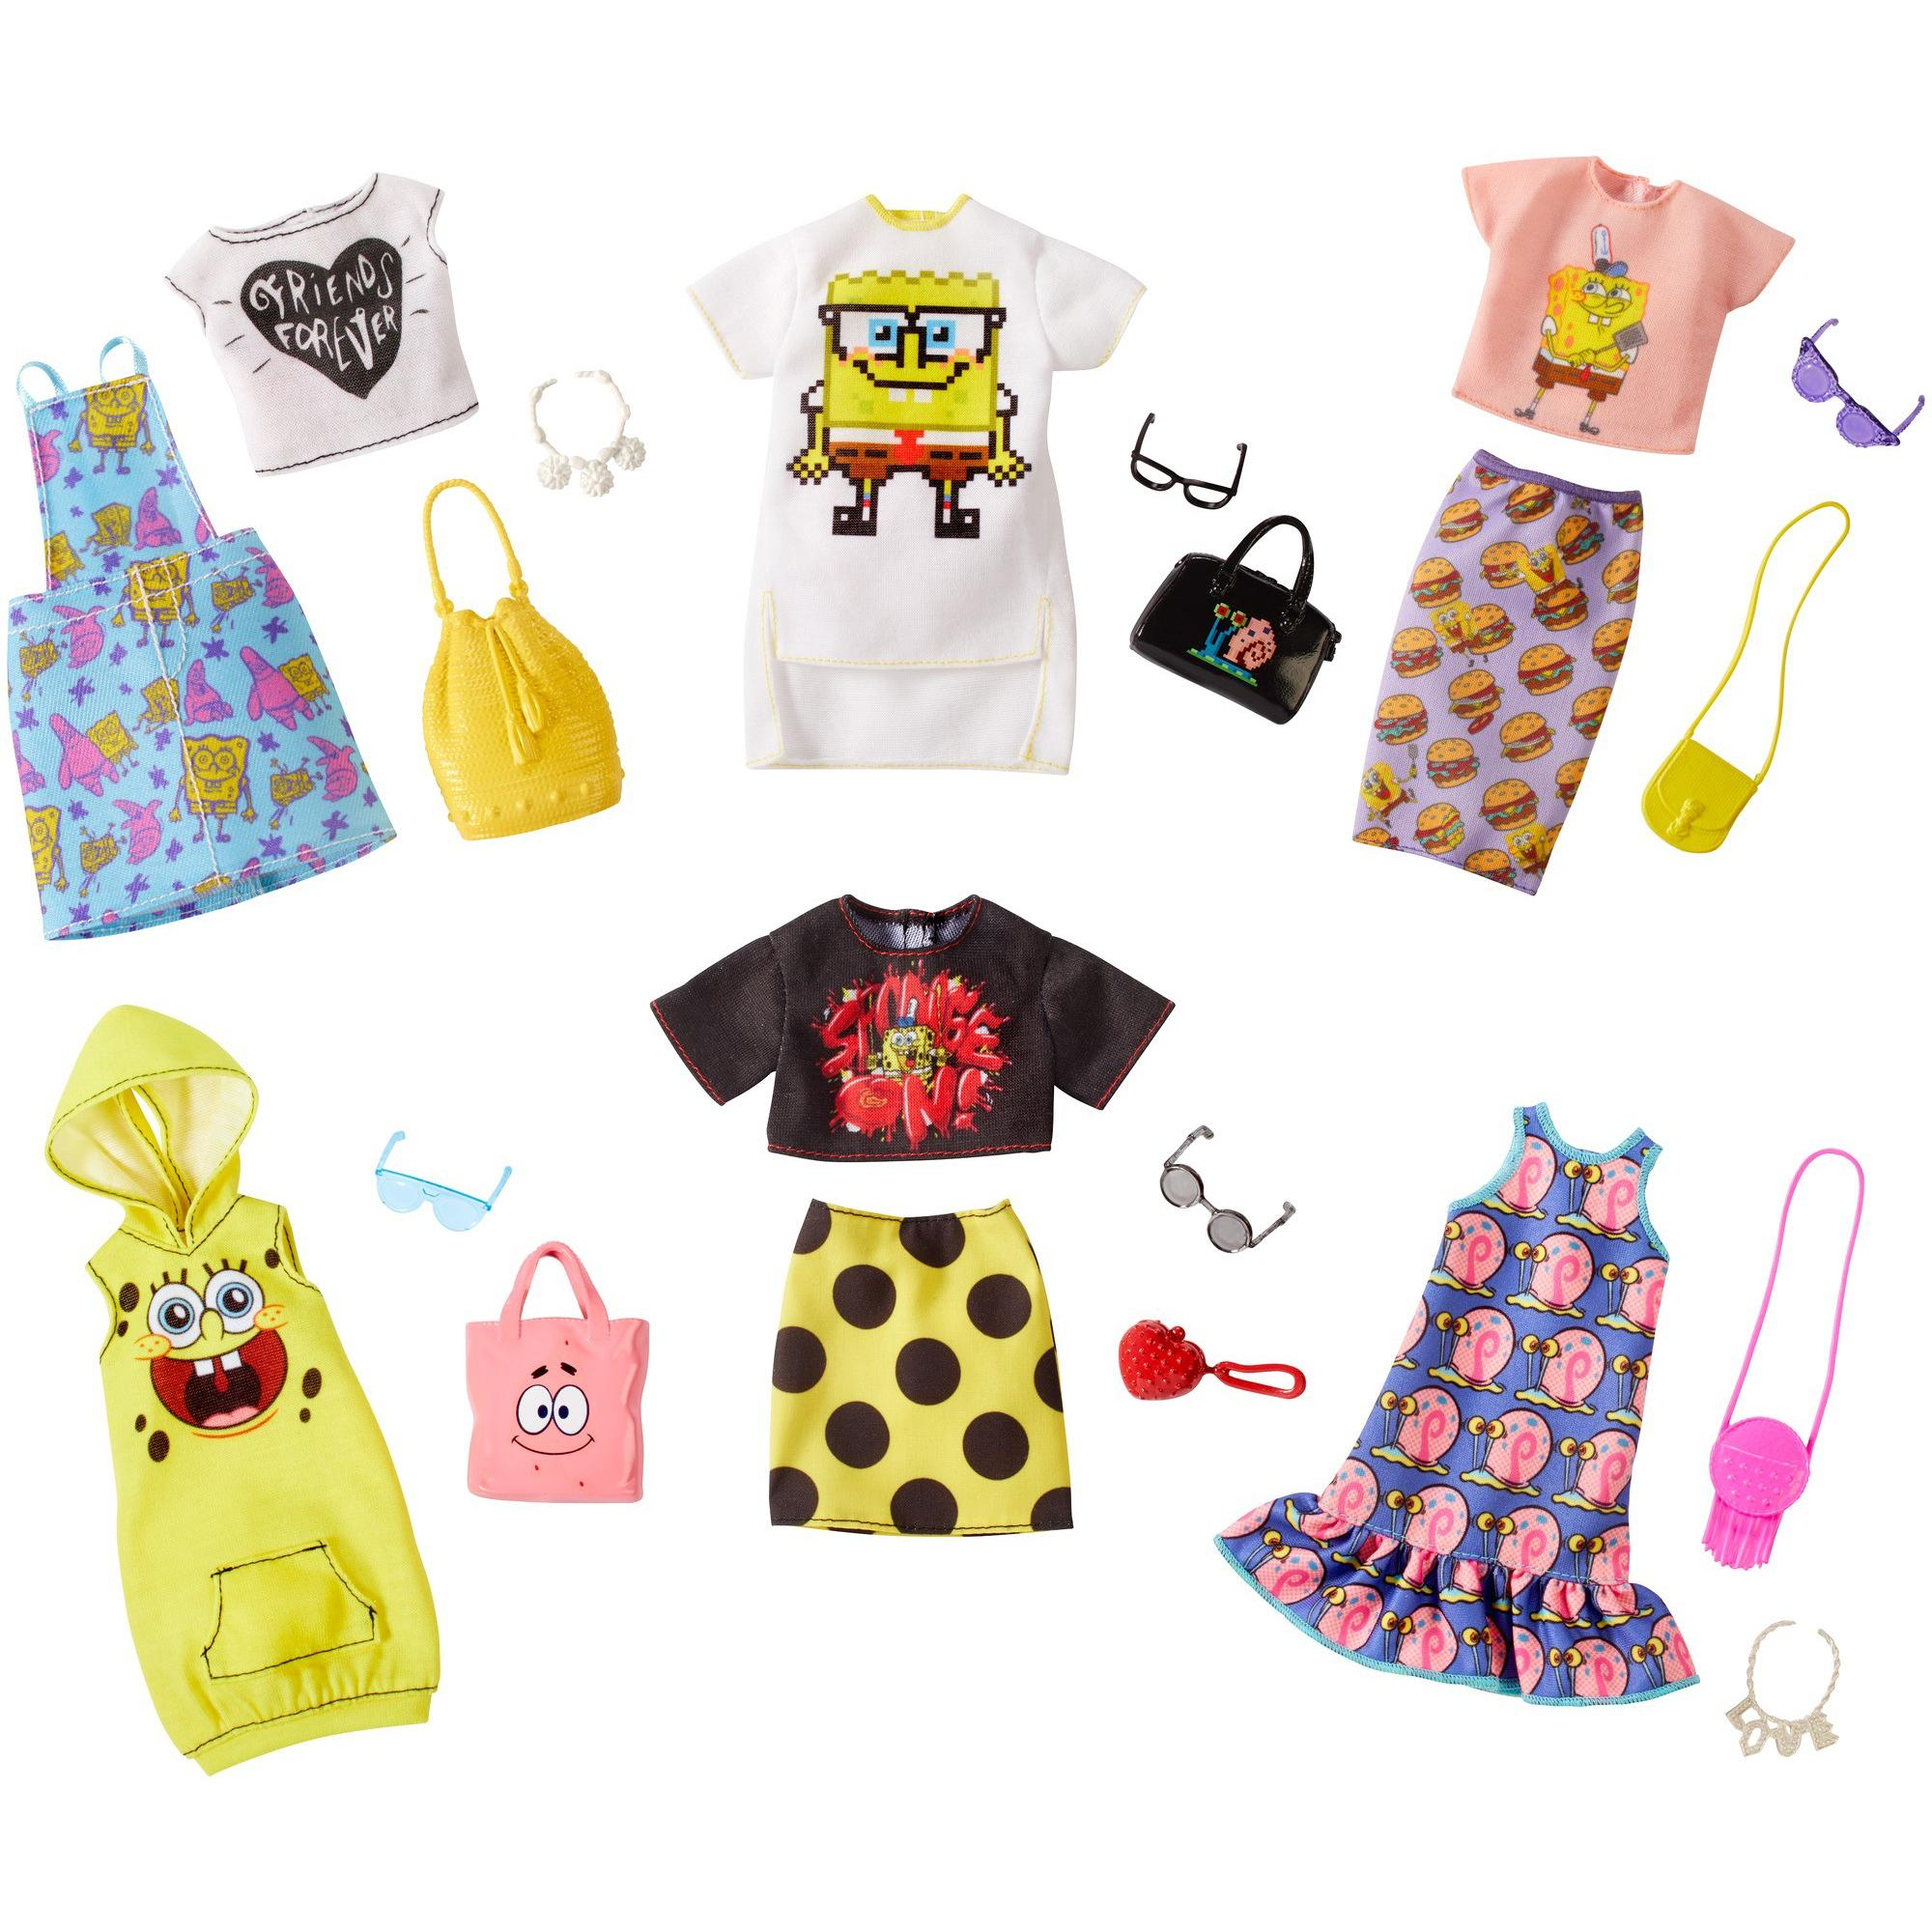 863c50a879 Barbie Licensed Fashion with 1-Outfit   Accessories (Styles May Vary) -  Walmart.com